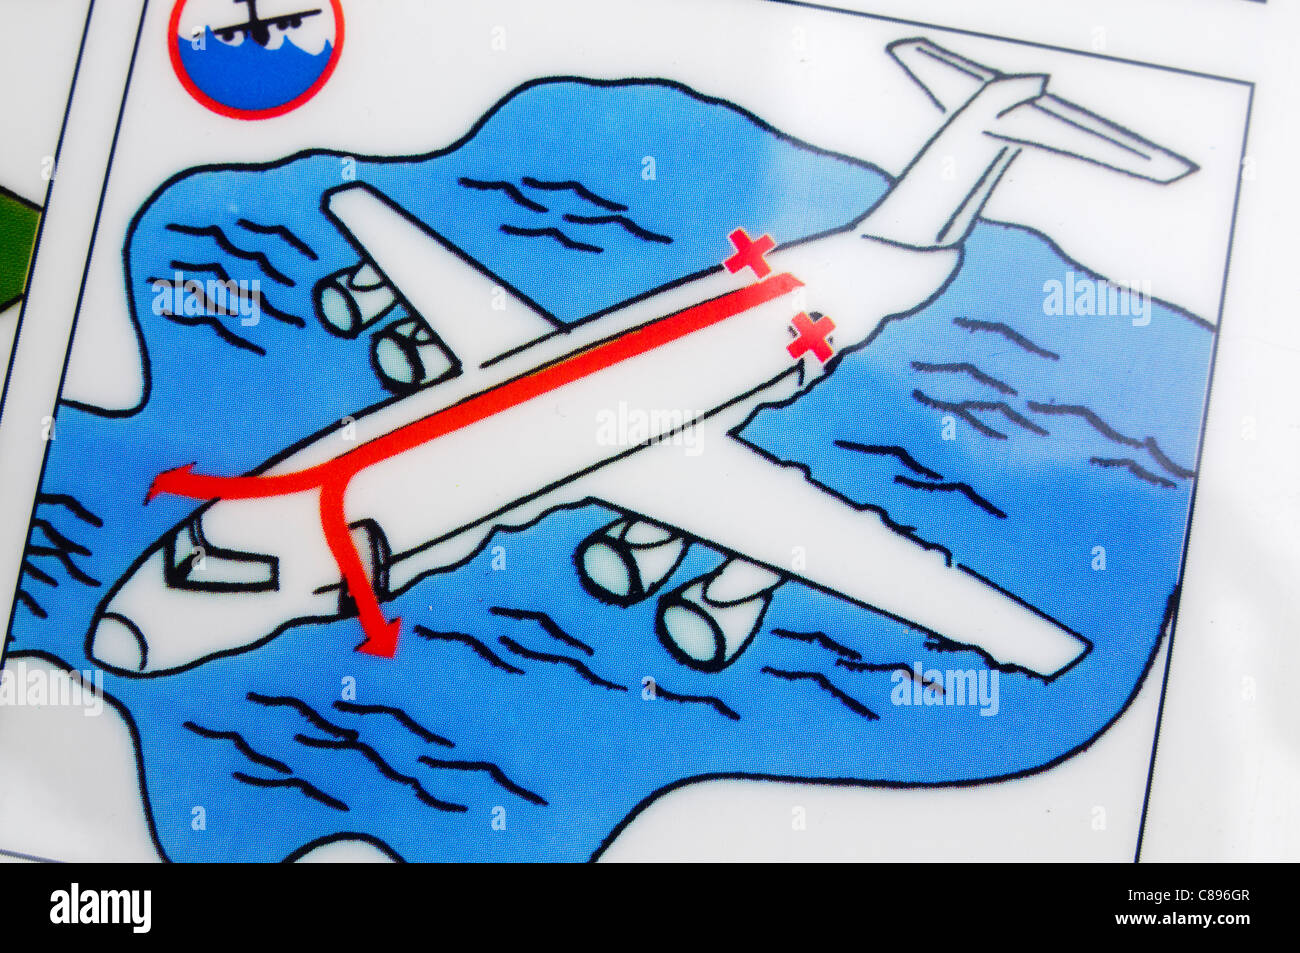 Closeup of an airline safety card showing how to evacuate in the event of an emergency landing on water in a Dash - Stock Image